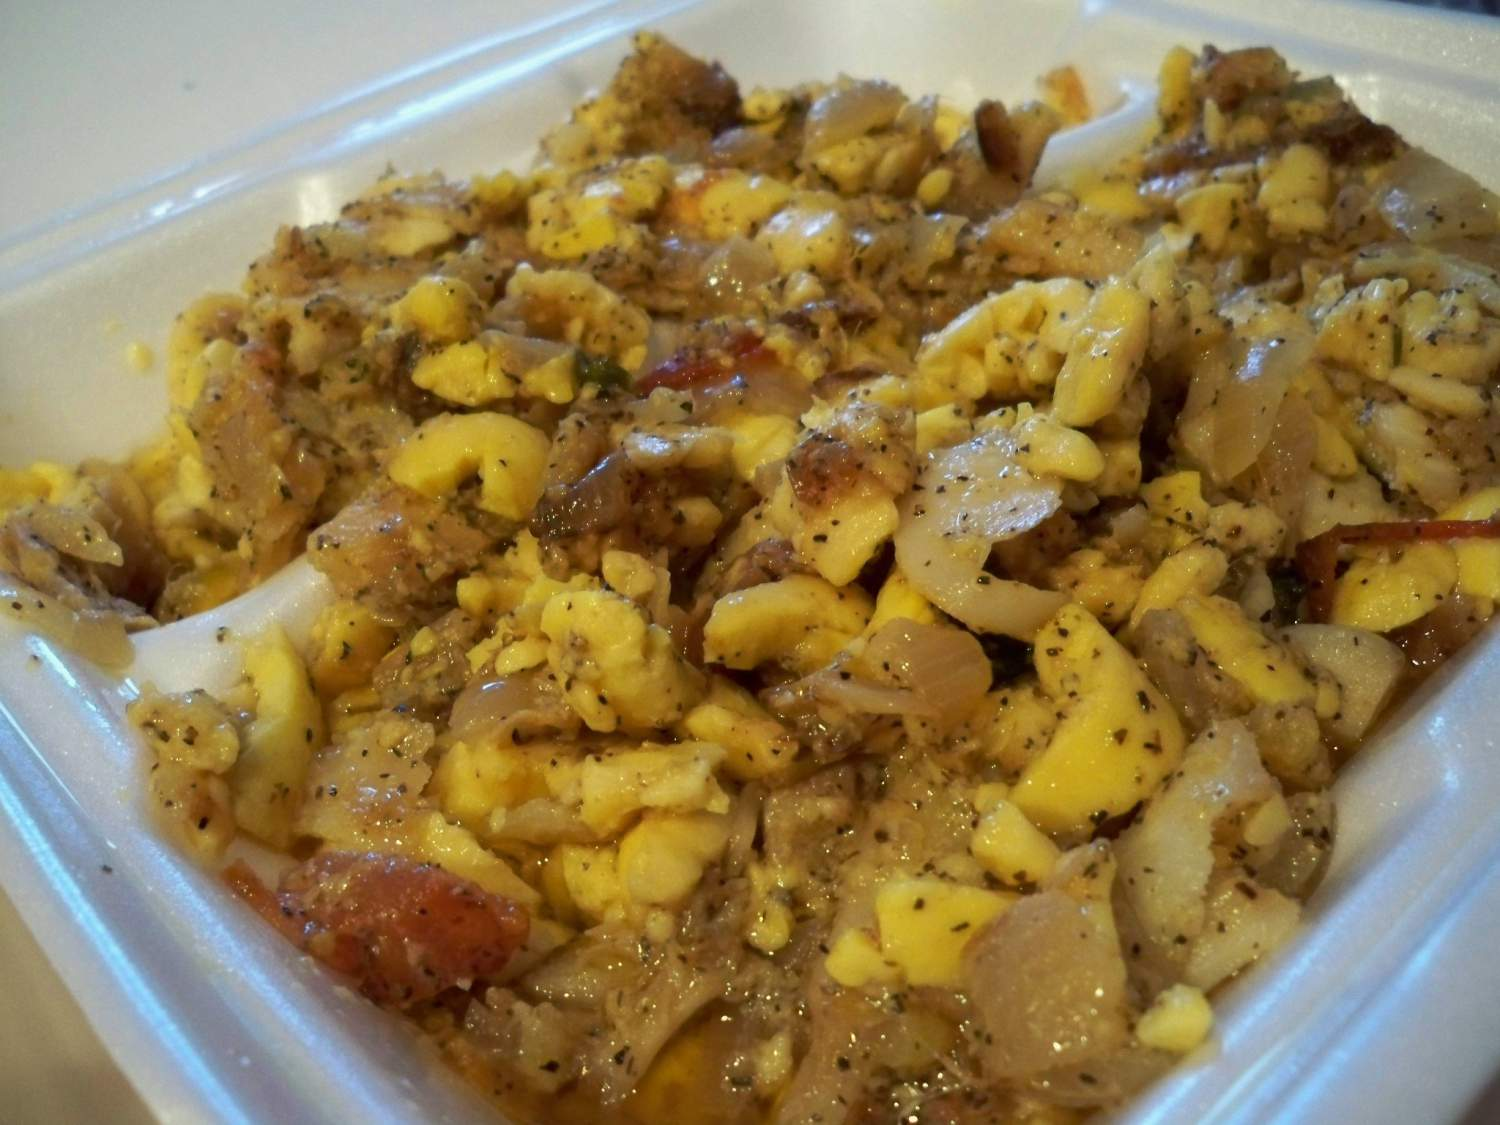 Delicious traditional jamaican food experience transat for Authentic jamaican cuisine